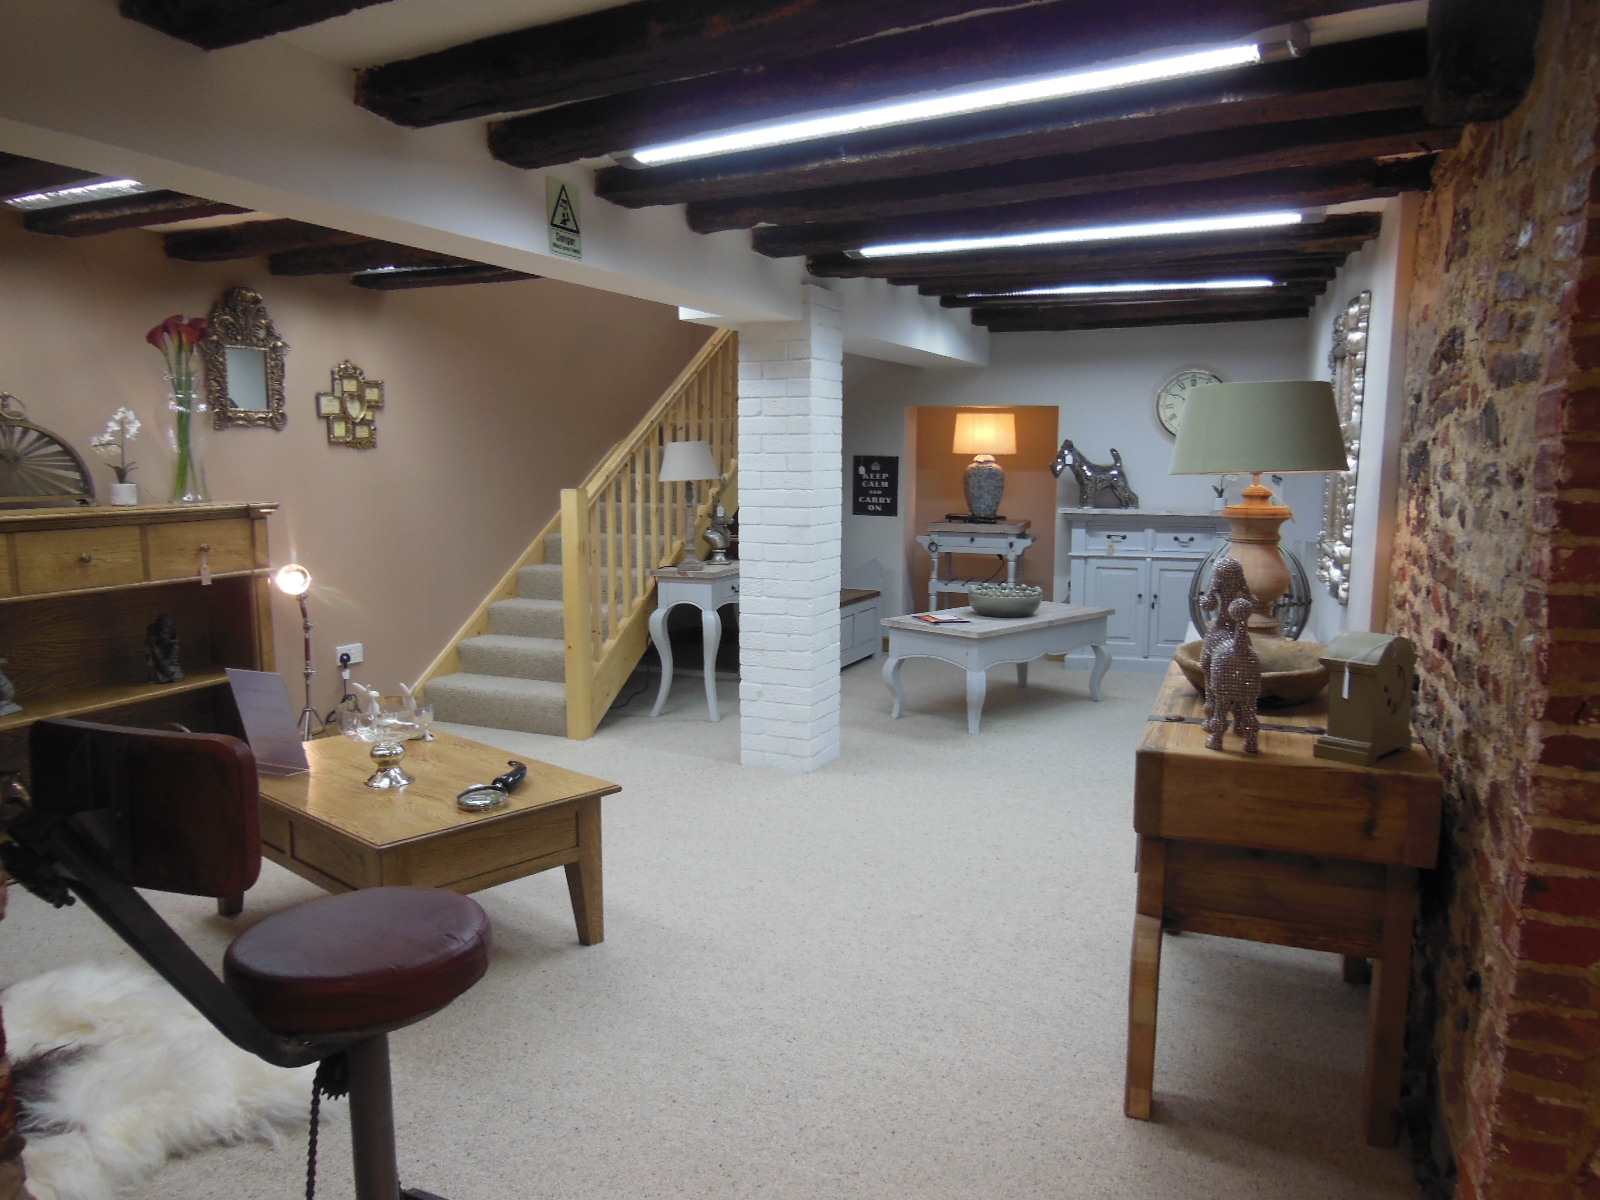 Hydes basement showroom now open